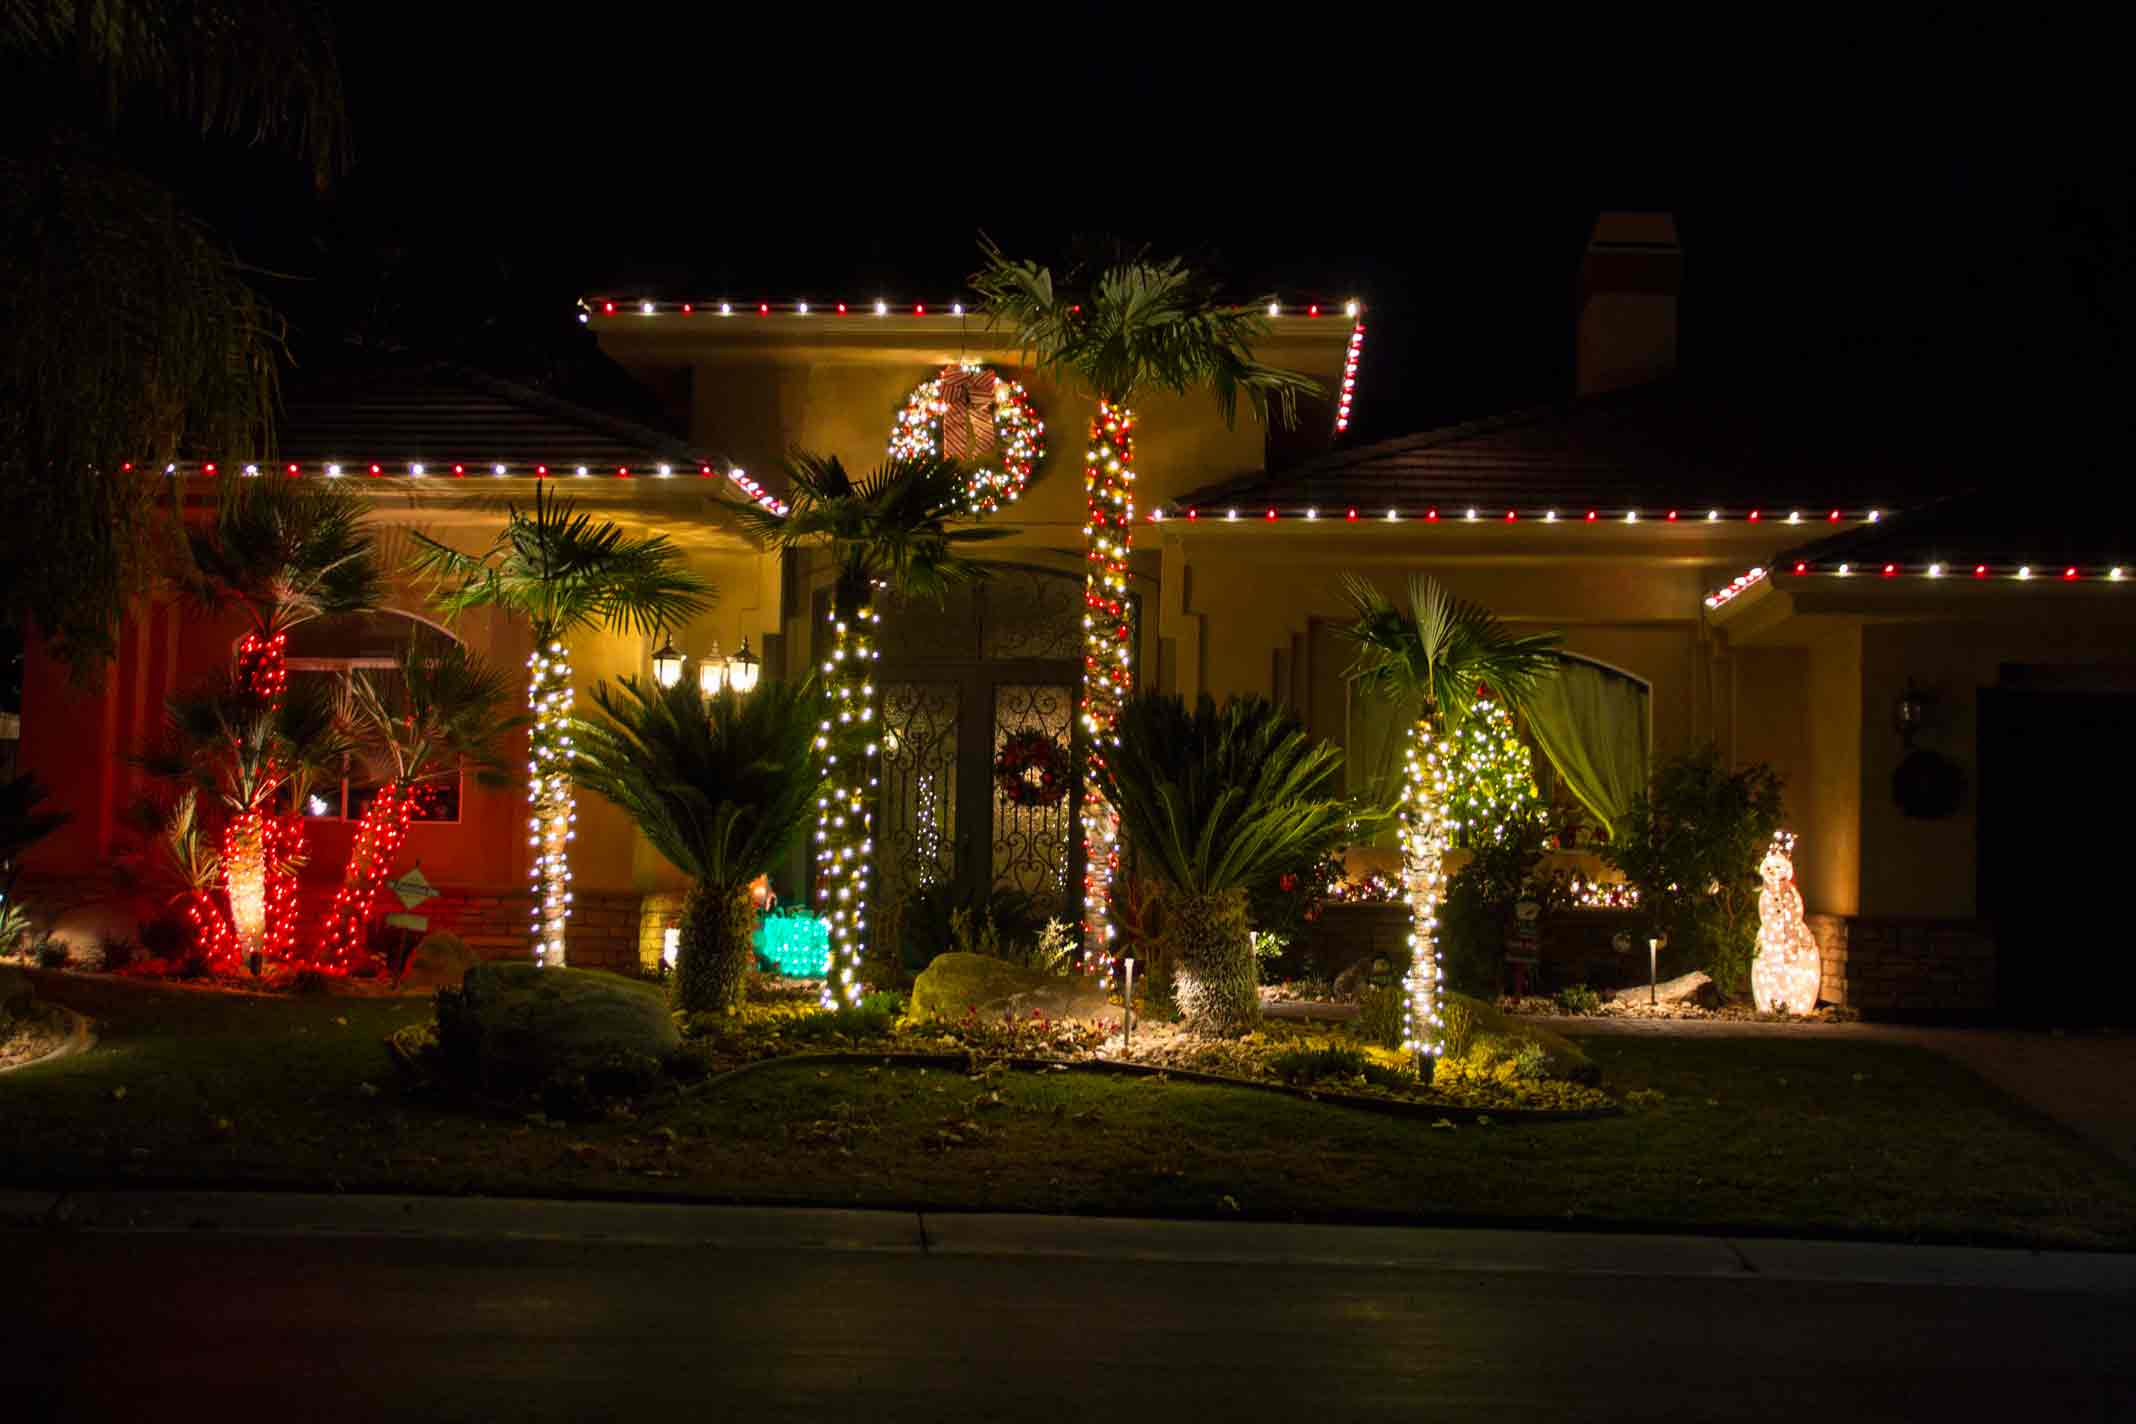 Residential traditional Christmas lighting by Holiday Decorations in Las Vegas